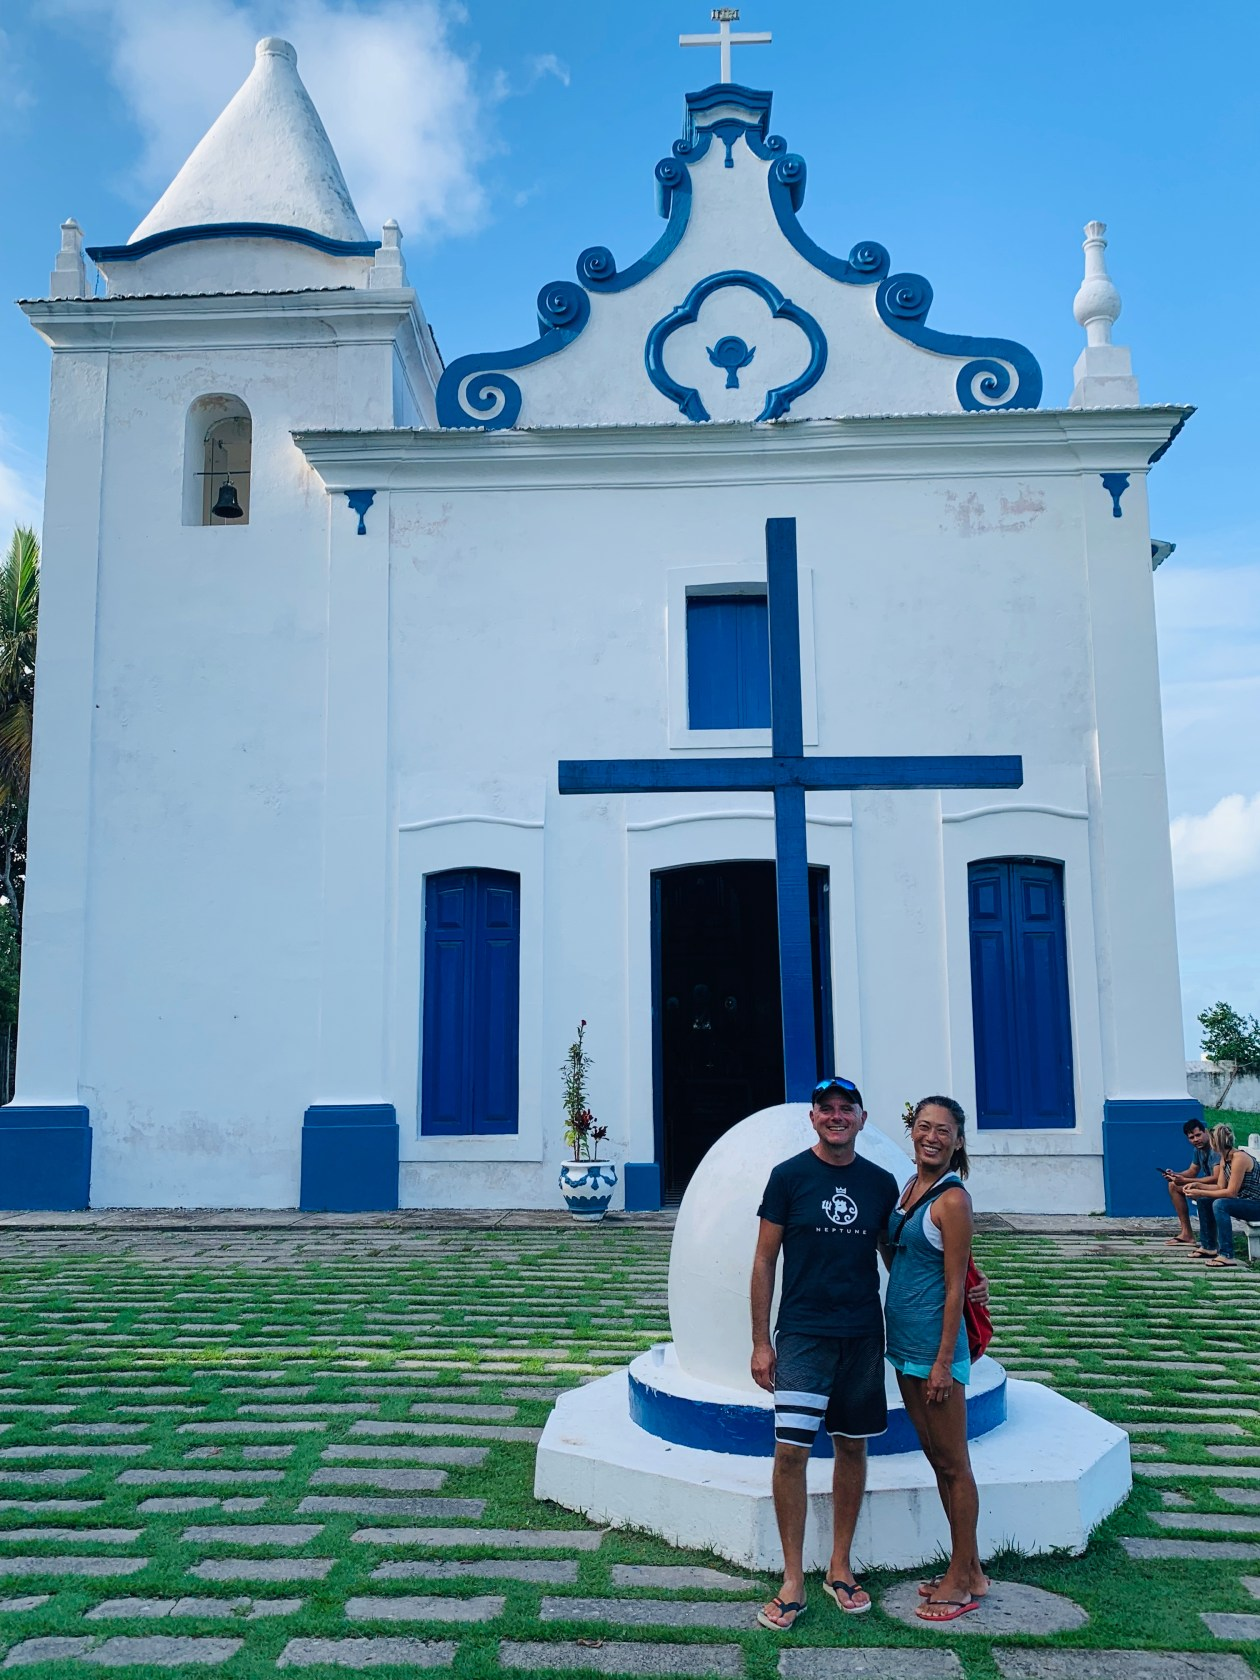 Santa Cruz Cabralia church